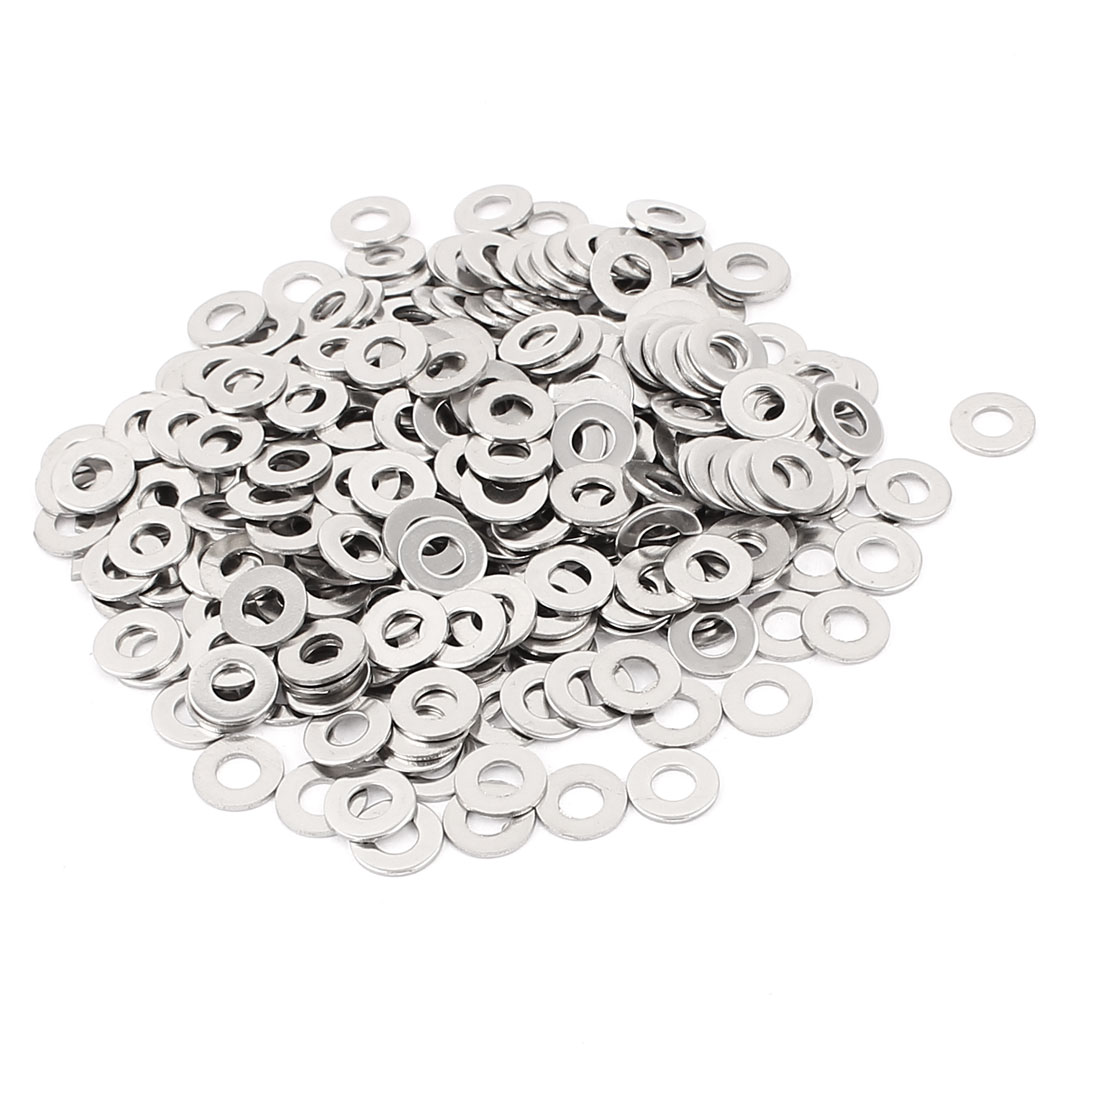 300pcs Stainless Steel 4mm Flat Washers for M4 Threaded Screws